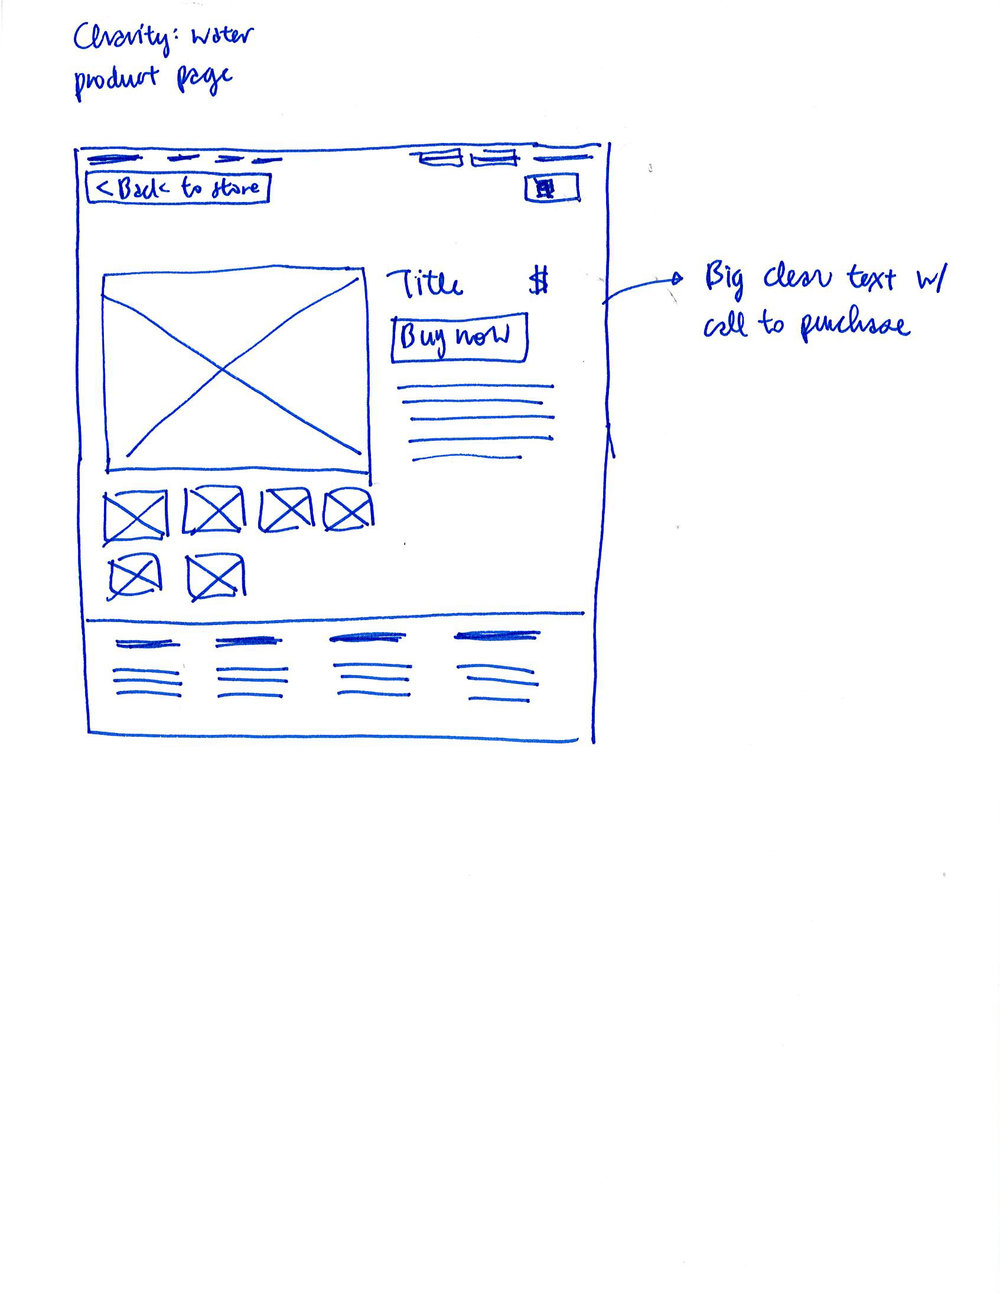 2_charity_wireframe-1.jpg